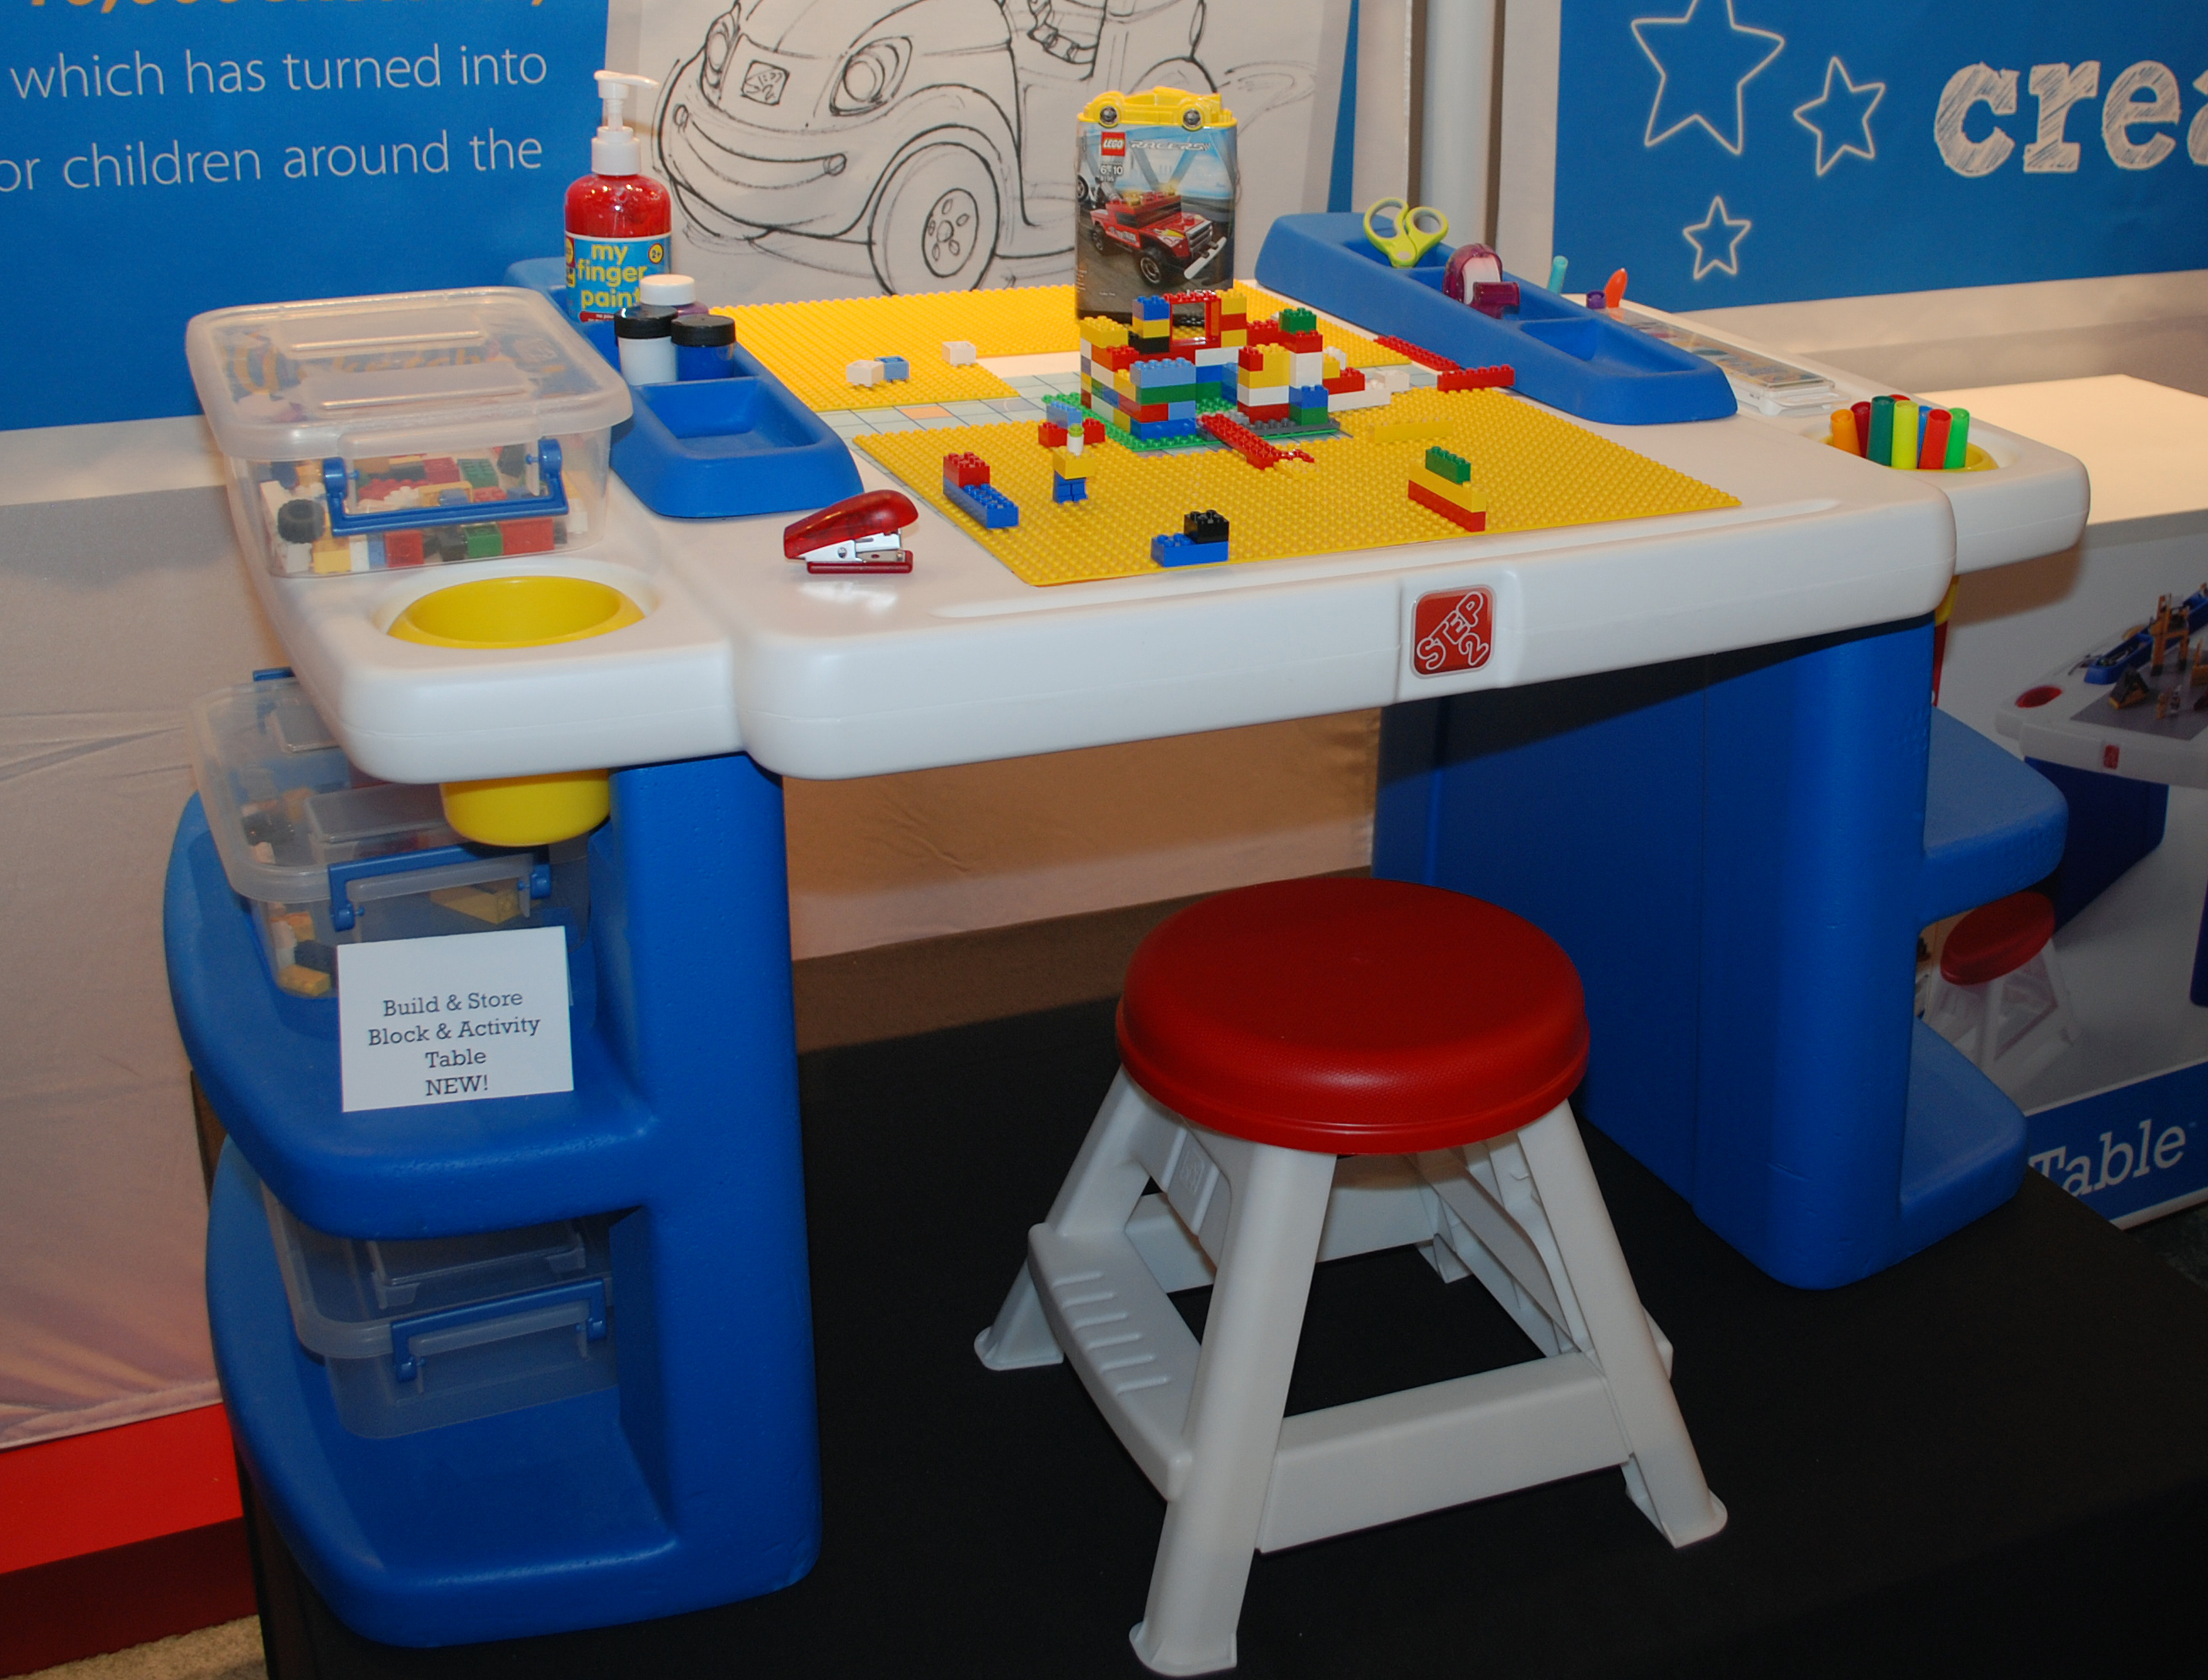 Build and Store Art and Activity Table